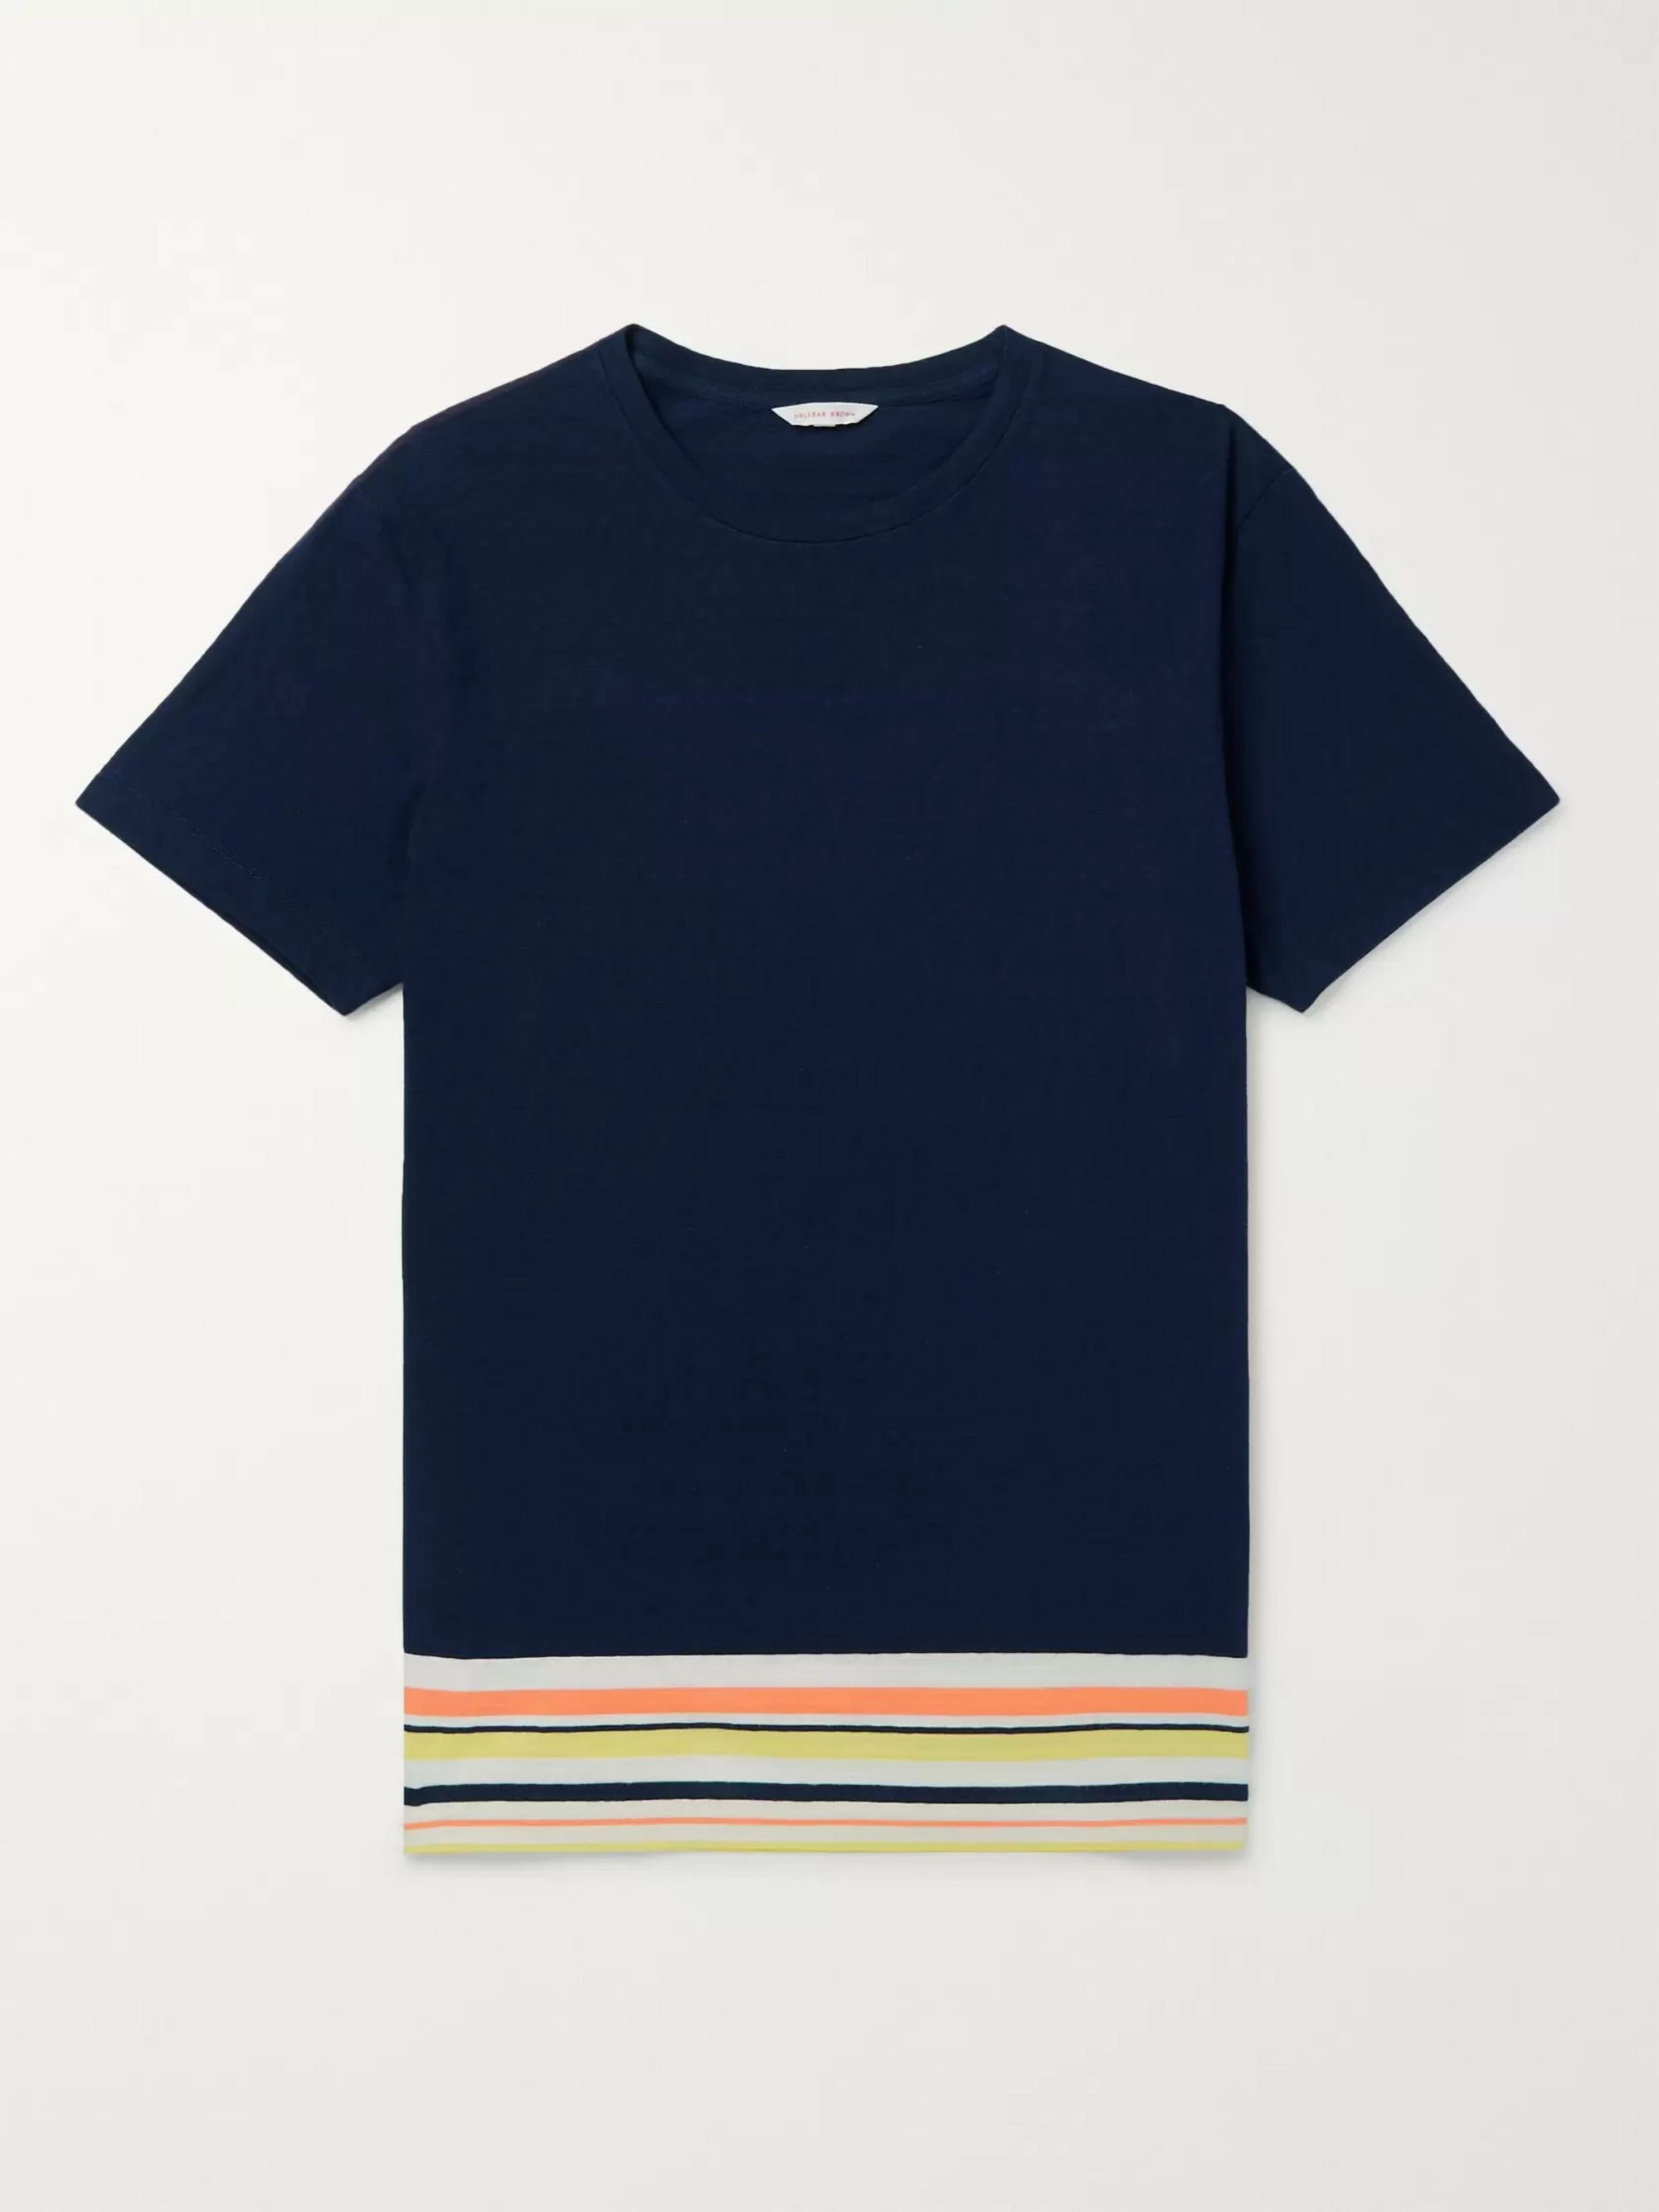 Orlebar Brown Striped Cotton and Linen-Blend Jersey T-Shirt